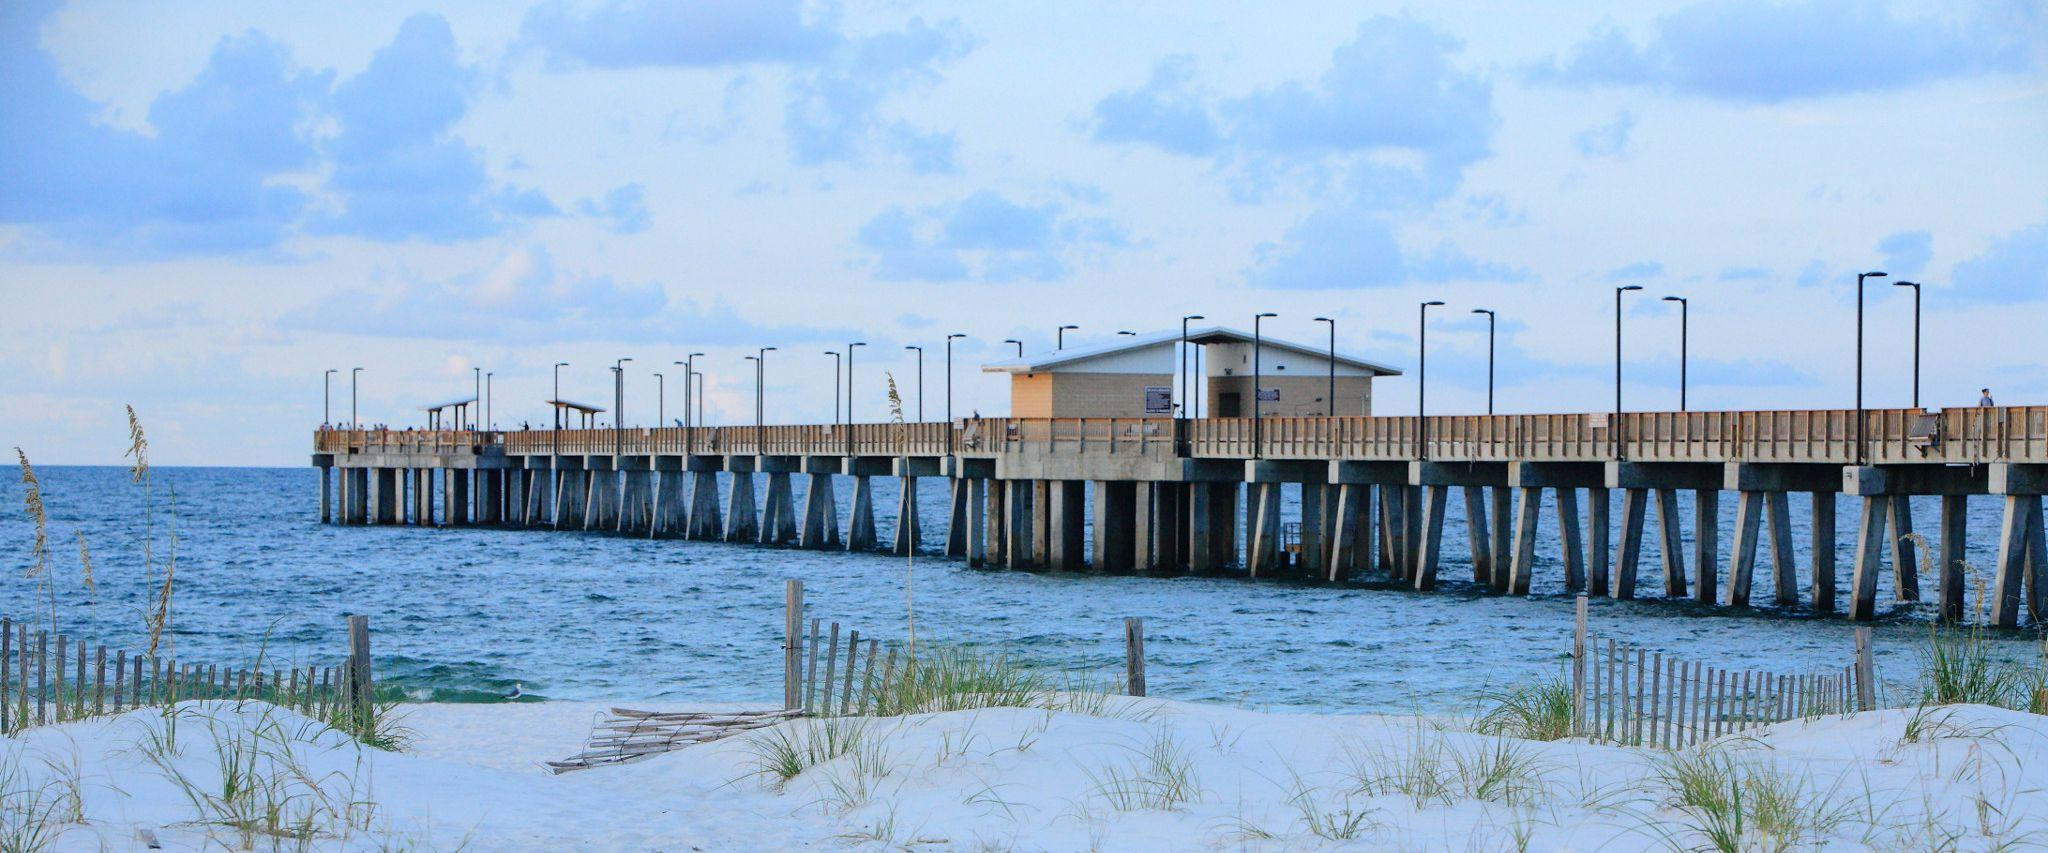 Gulf State Park Fishing and Education Pier Gulf Shores AL